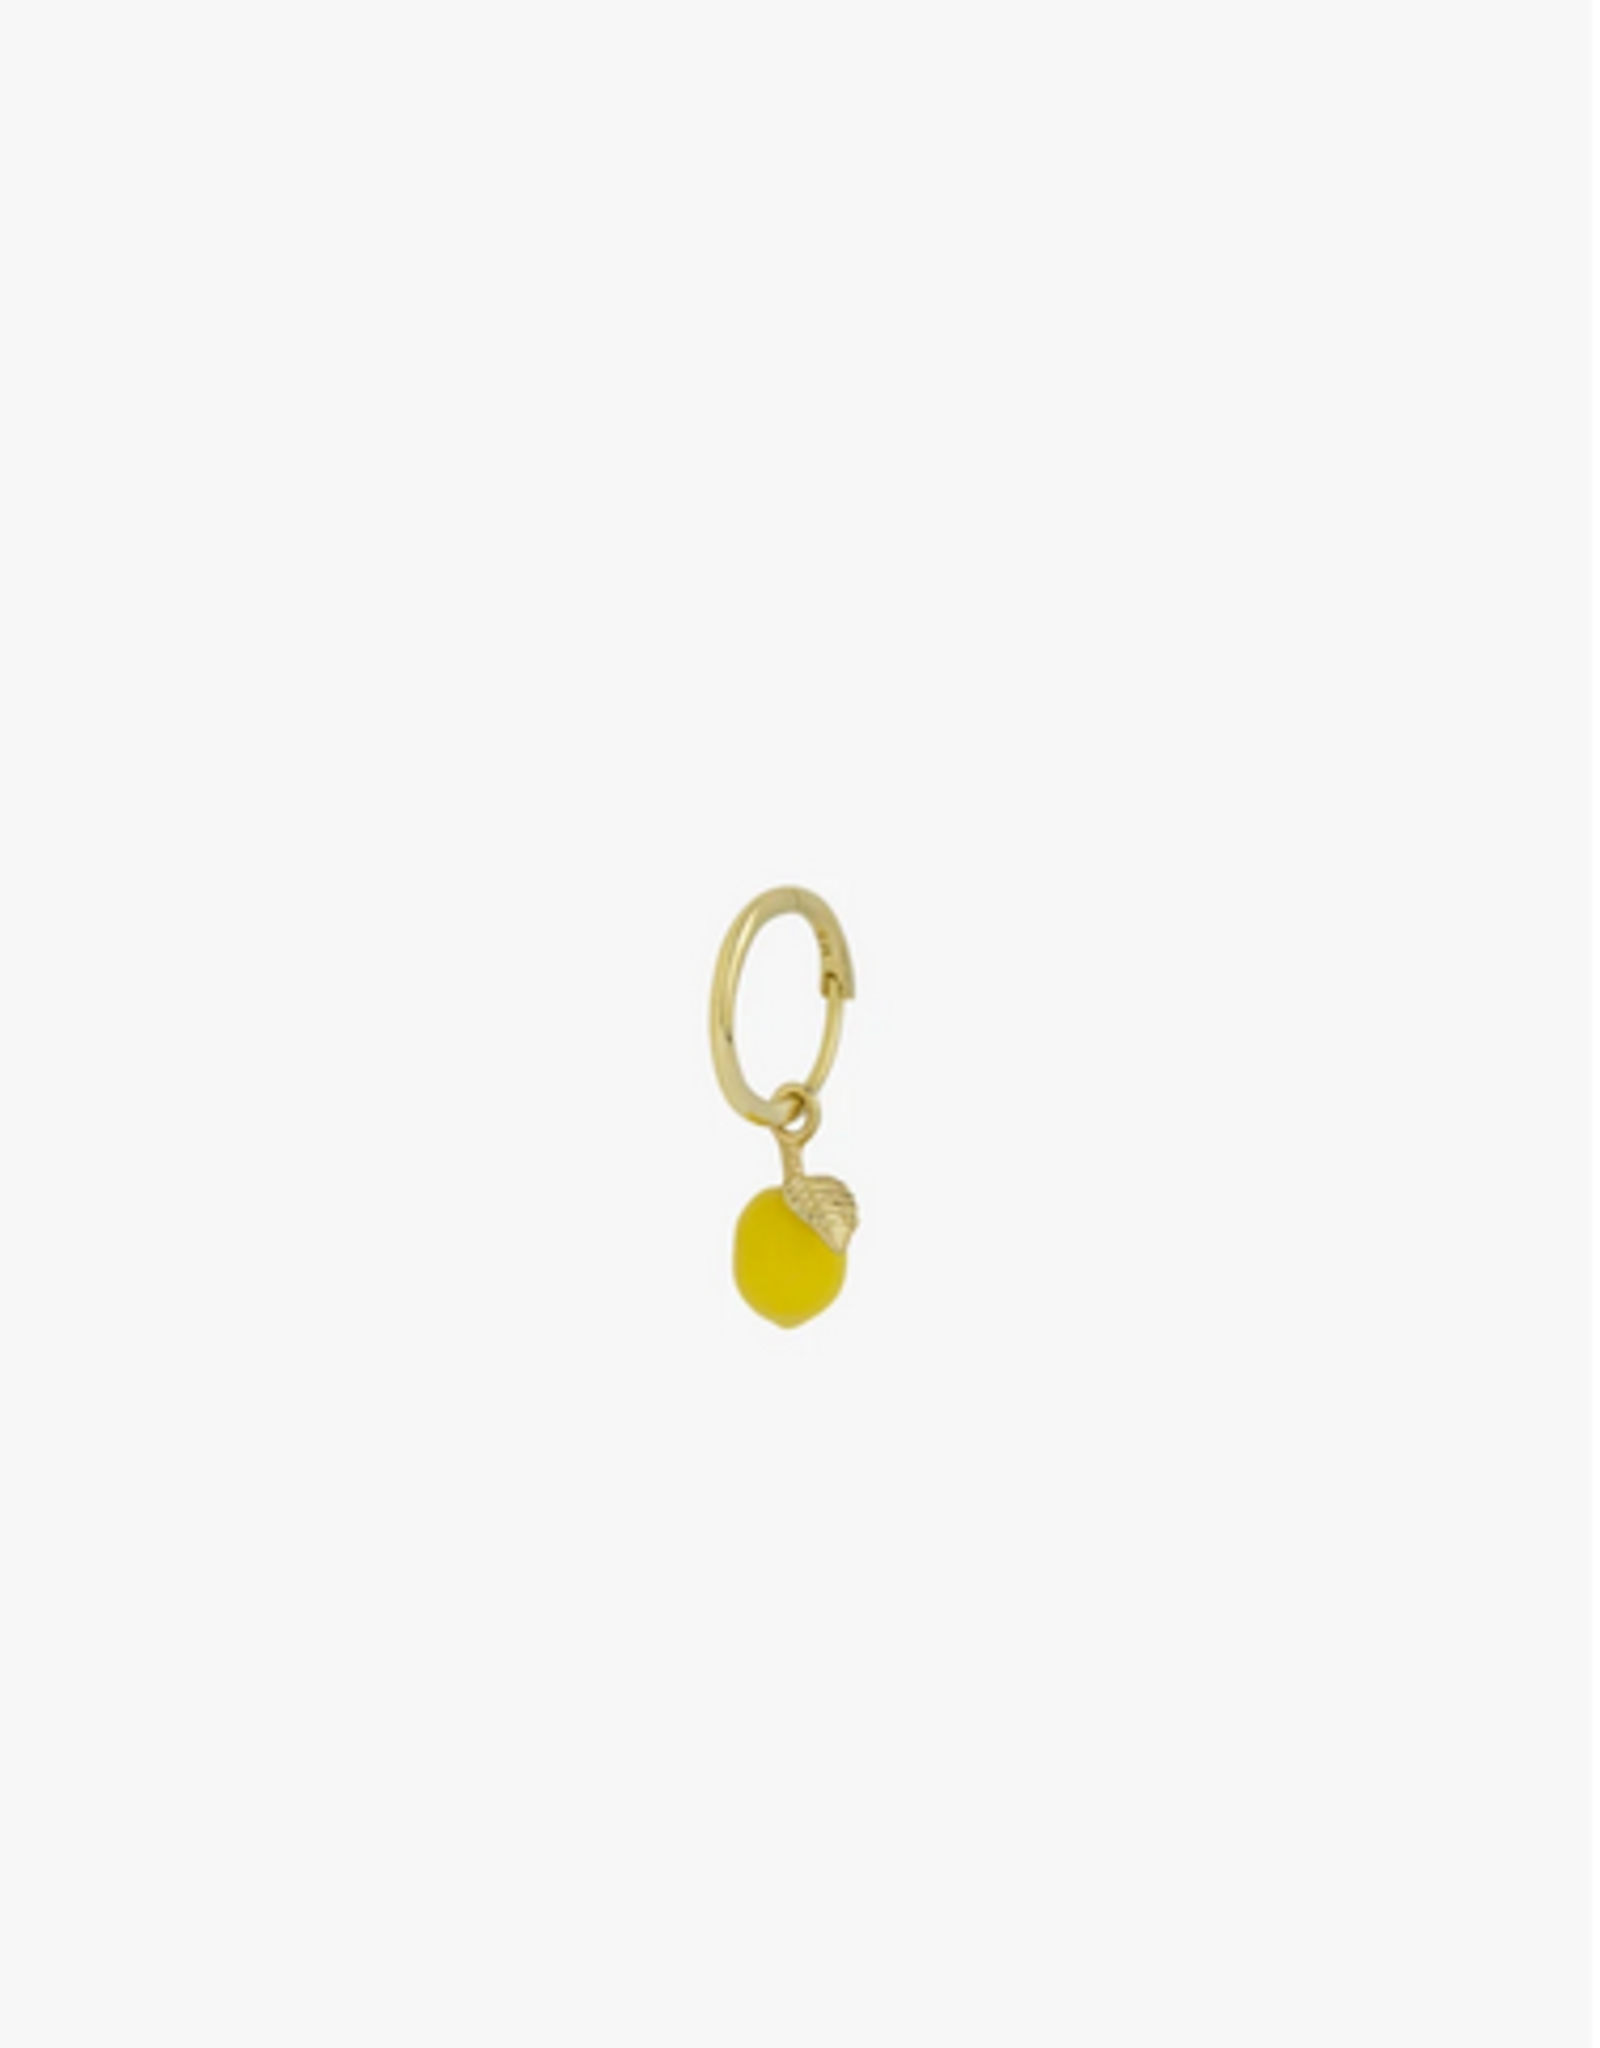 Wildthings Collectables Lemon earring gold